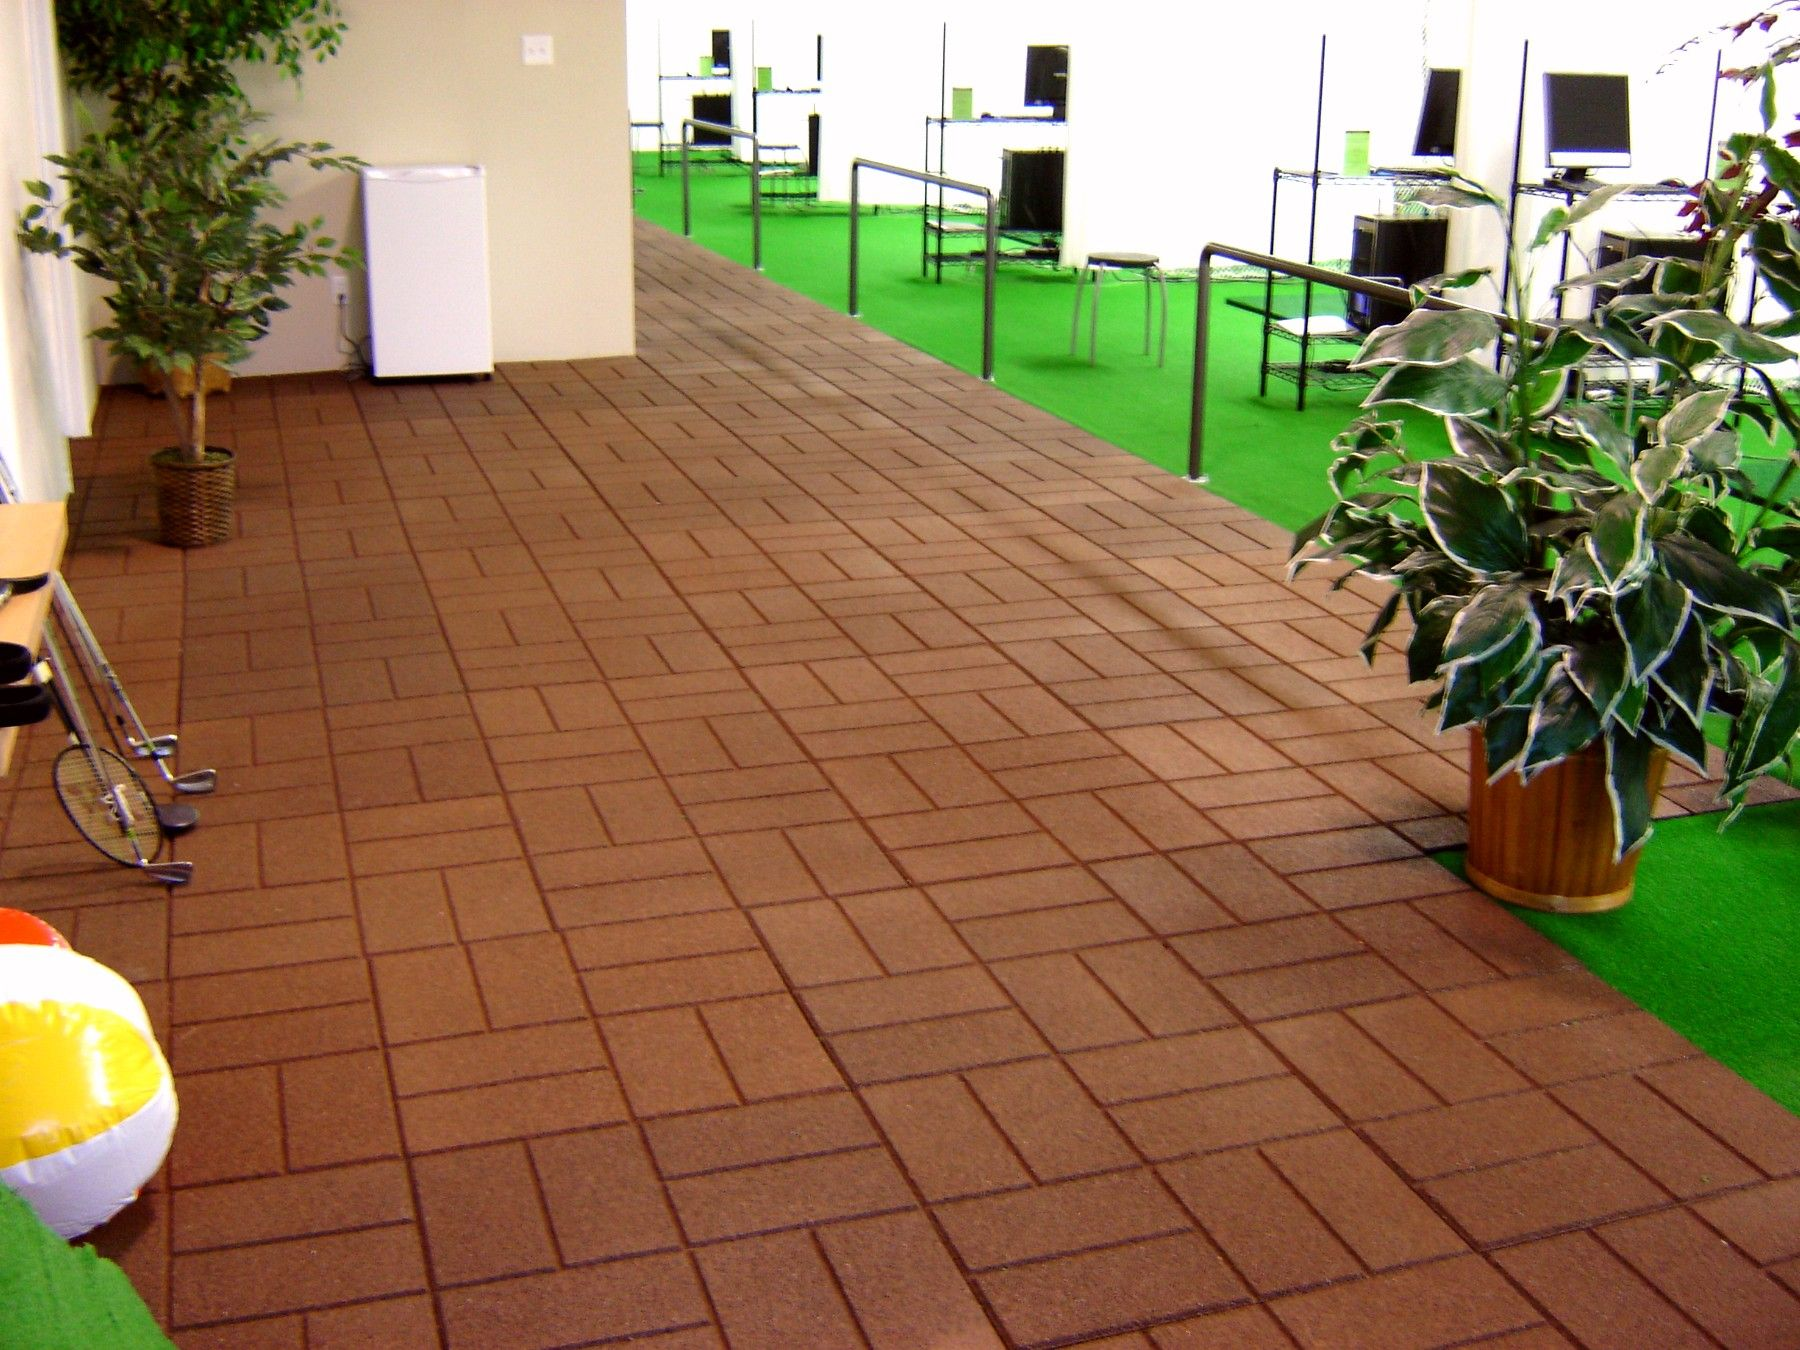 Rubber garden tiles google zoeken tuin pinterest searching porch rubber tile flooringrubber mat picture from qingdao emei ind view photo of rubber tile rubber paver rubber flooringntact china suppliers for dailygadgetfo Image collections